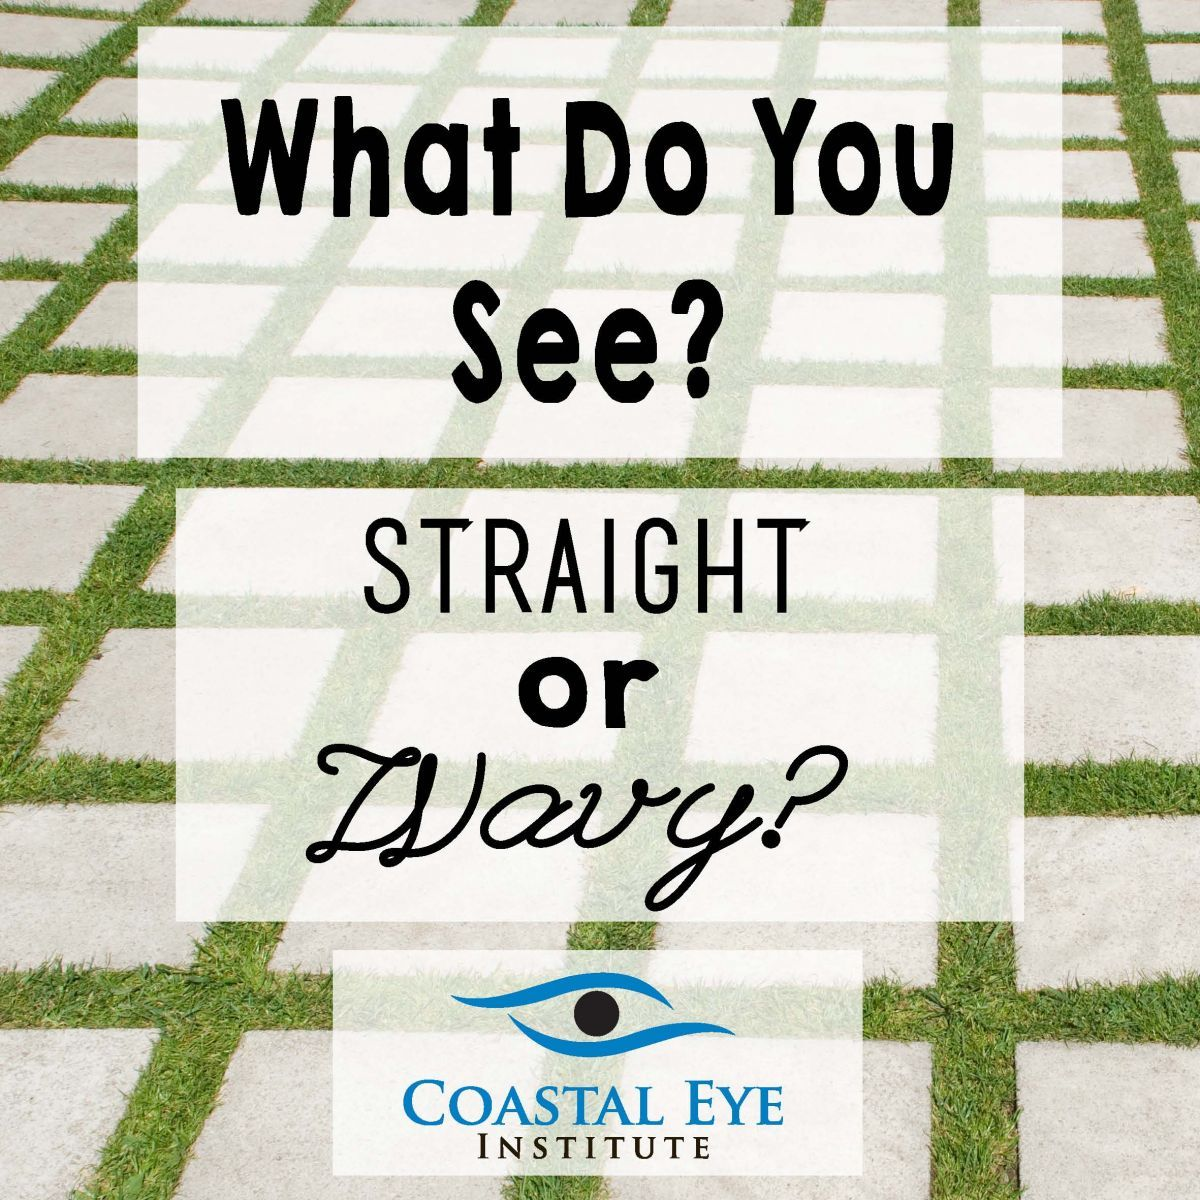 Eye Care News Coastal Eye Institute Eye Care Macular